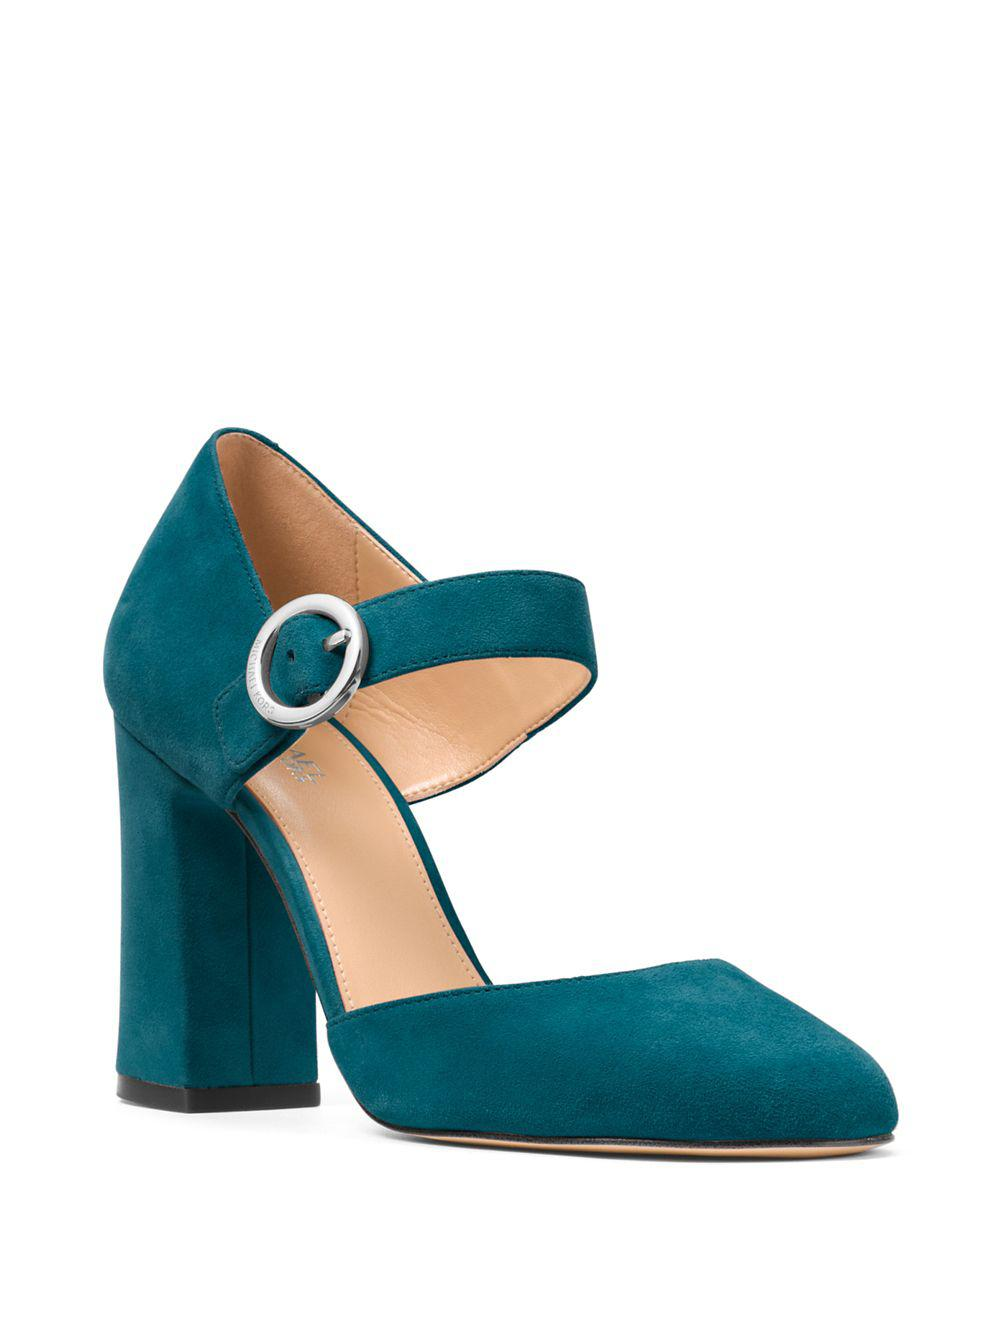 708c614d4f63 Lyst - Michael Michael Kors Alana Suede Mary Jane Pumps in Blue